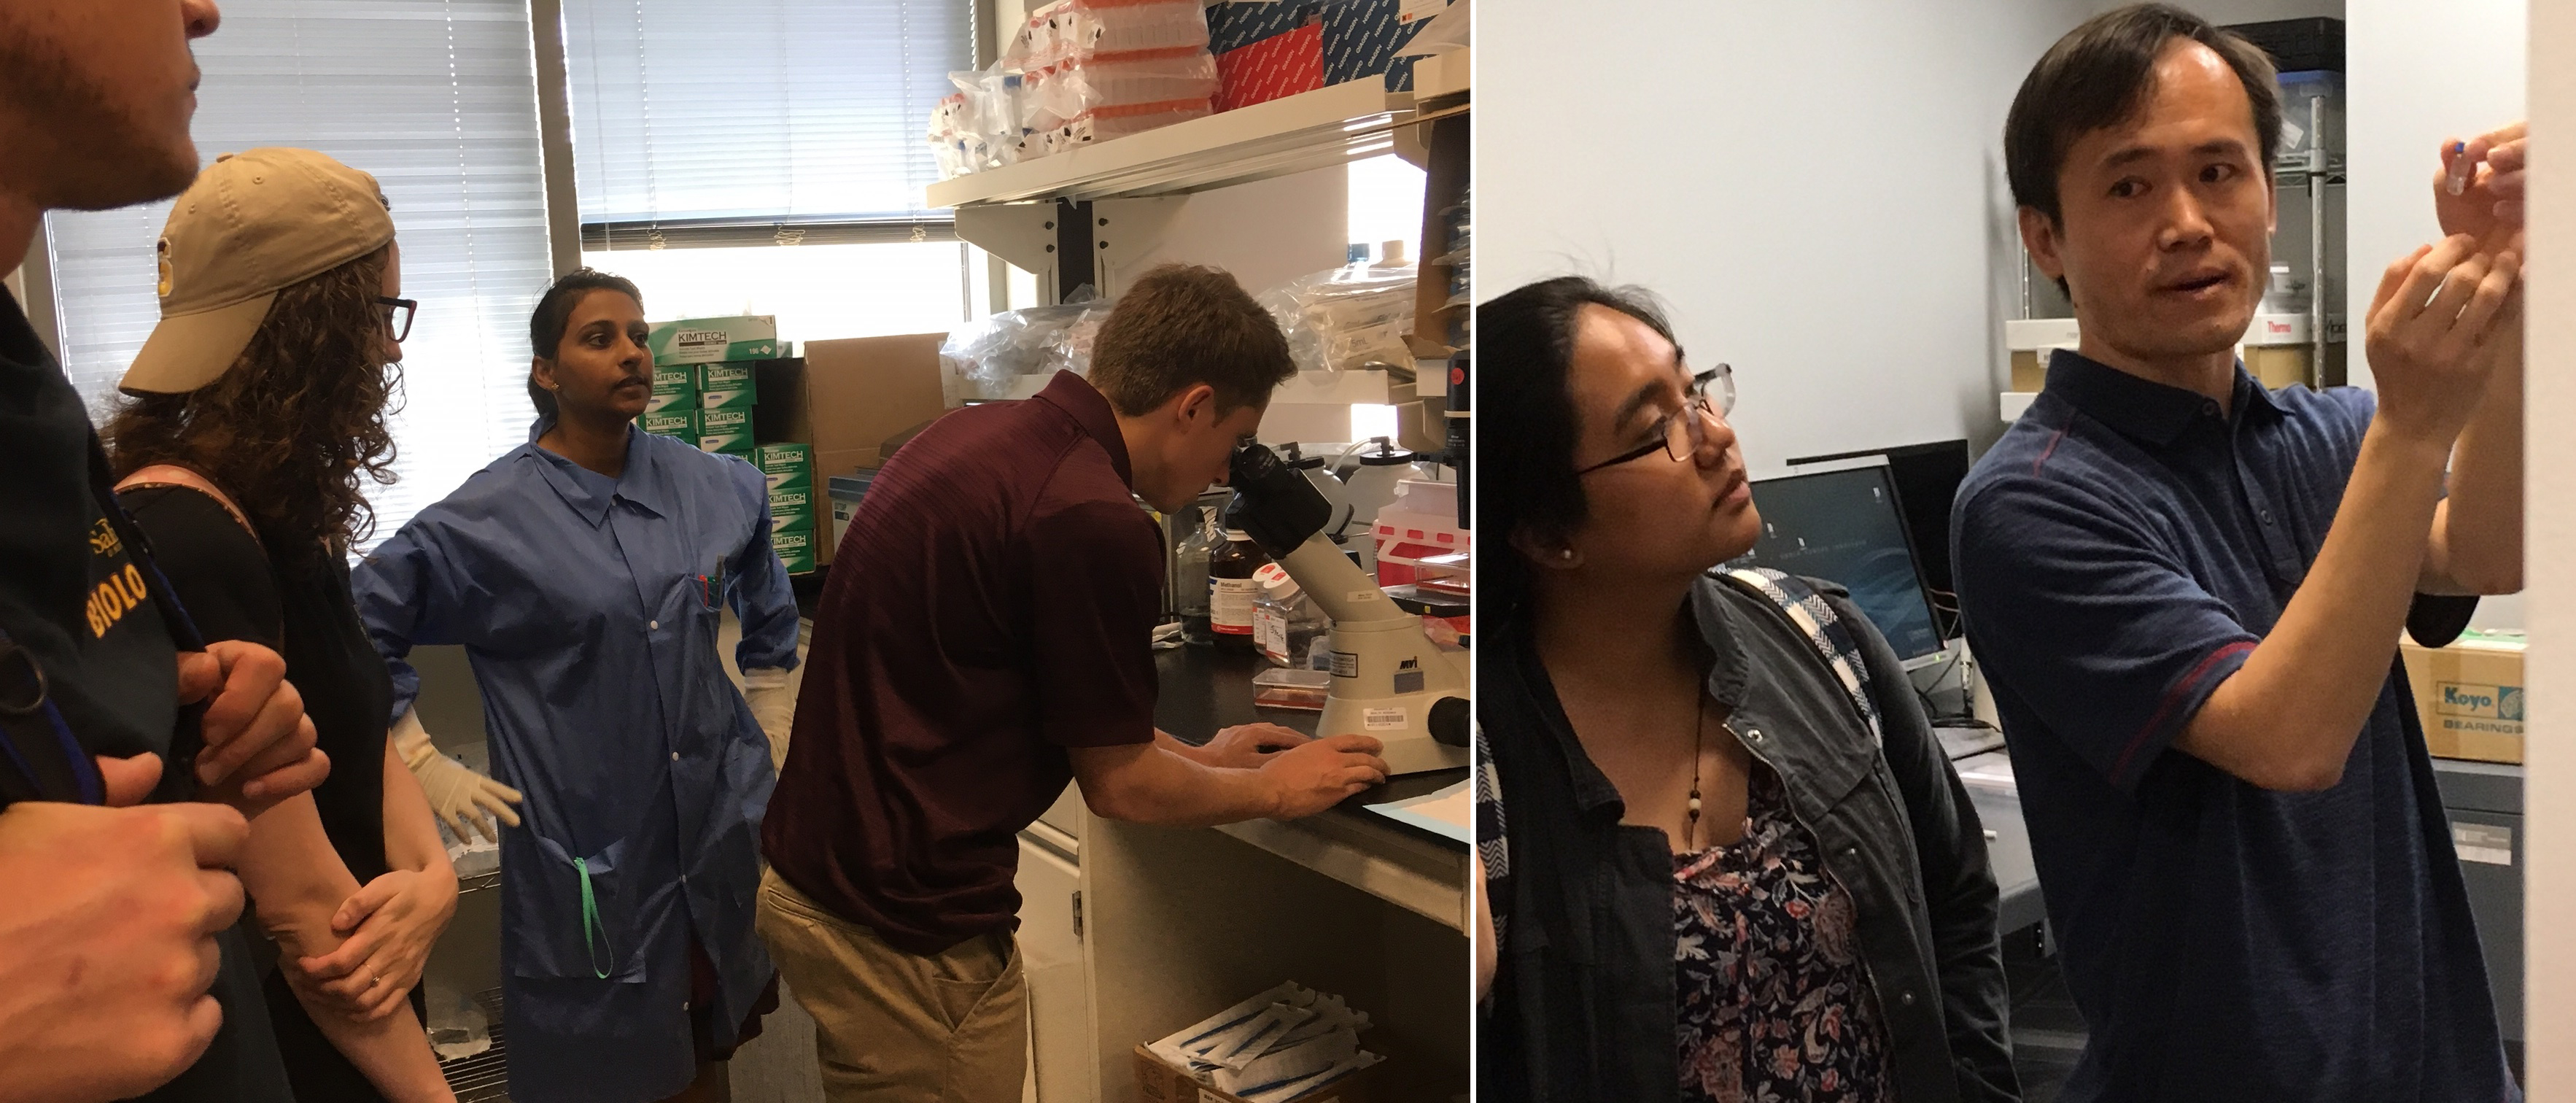 Students from Salisbury University tour JCVI's Rockville lab. Left: Dr. Chandran shows the group mammalian cell lines. Right: Dr. Yu discusses mass spectroscopy.